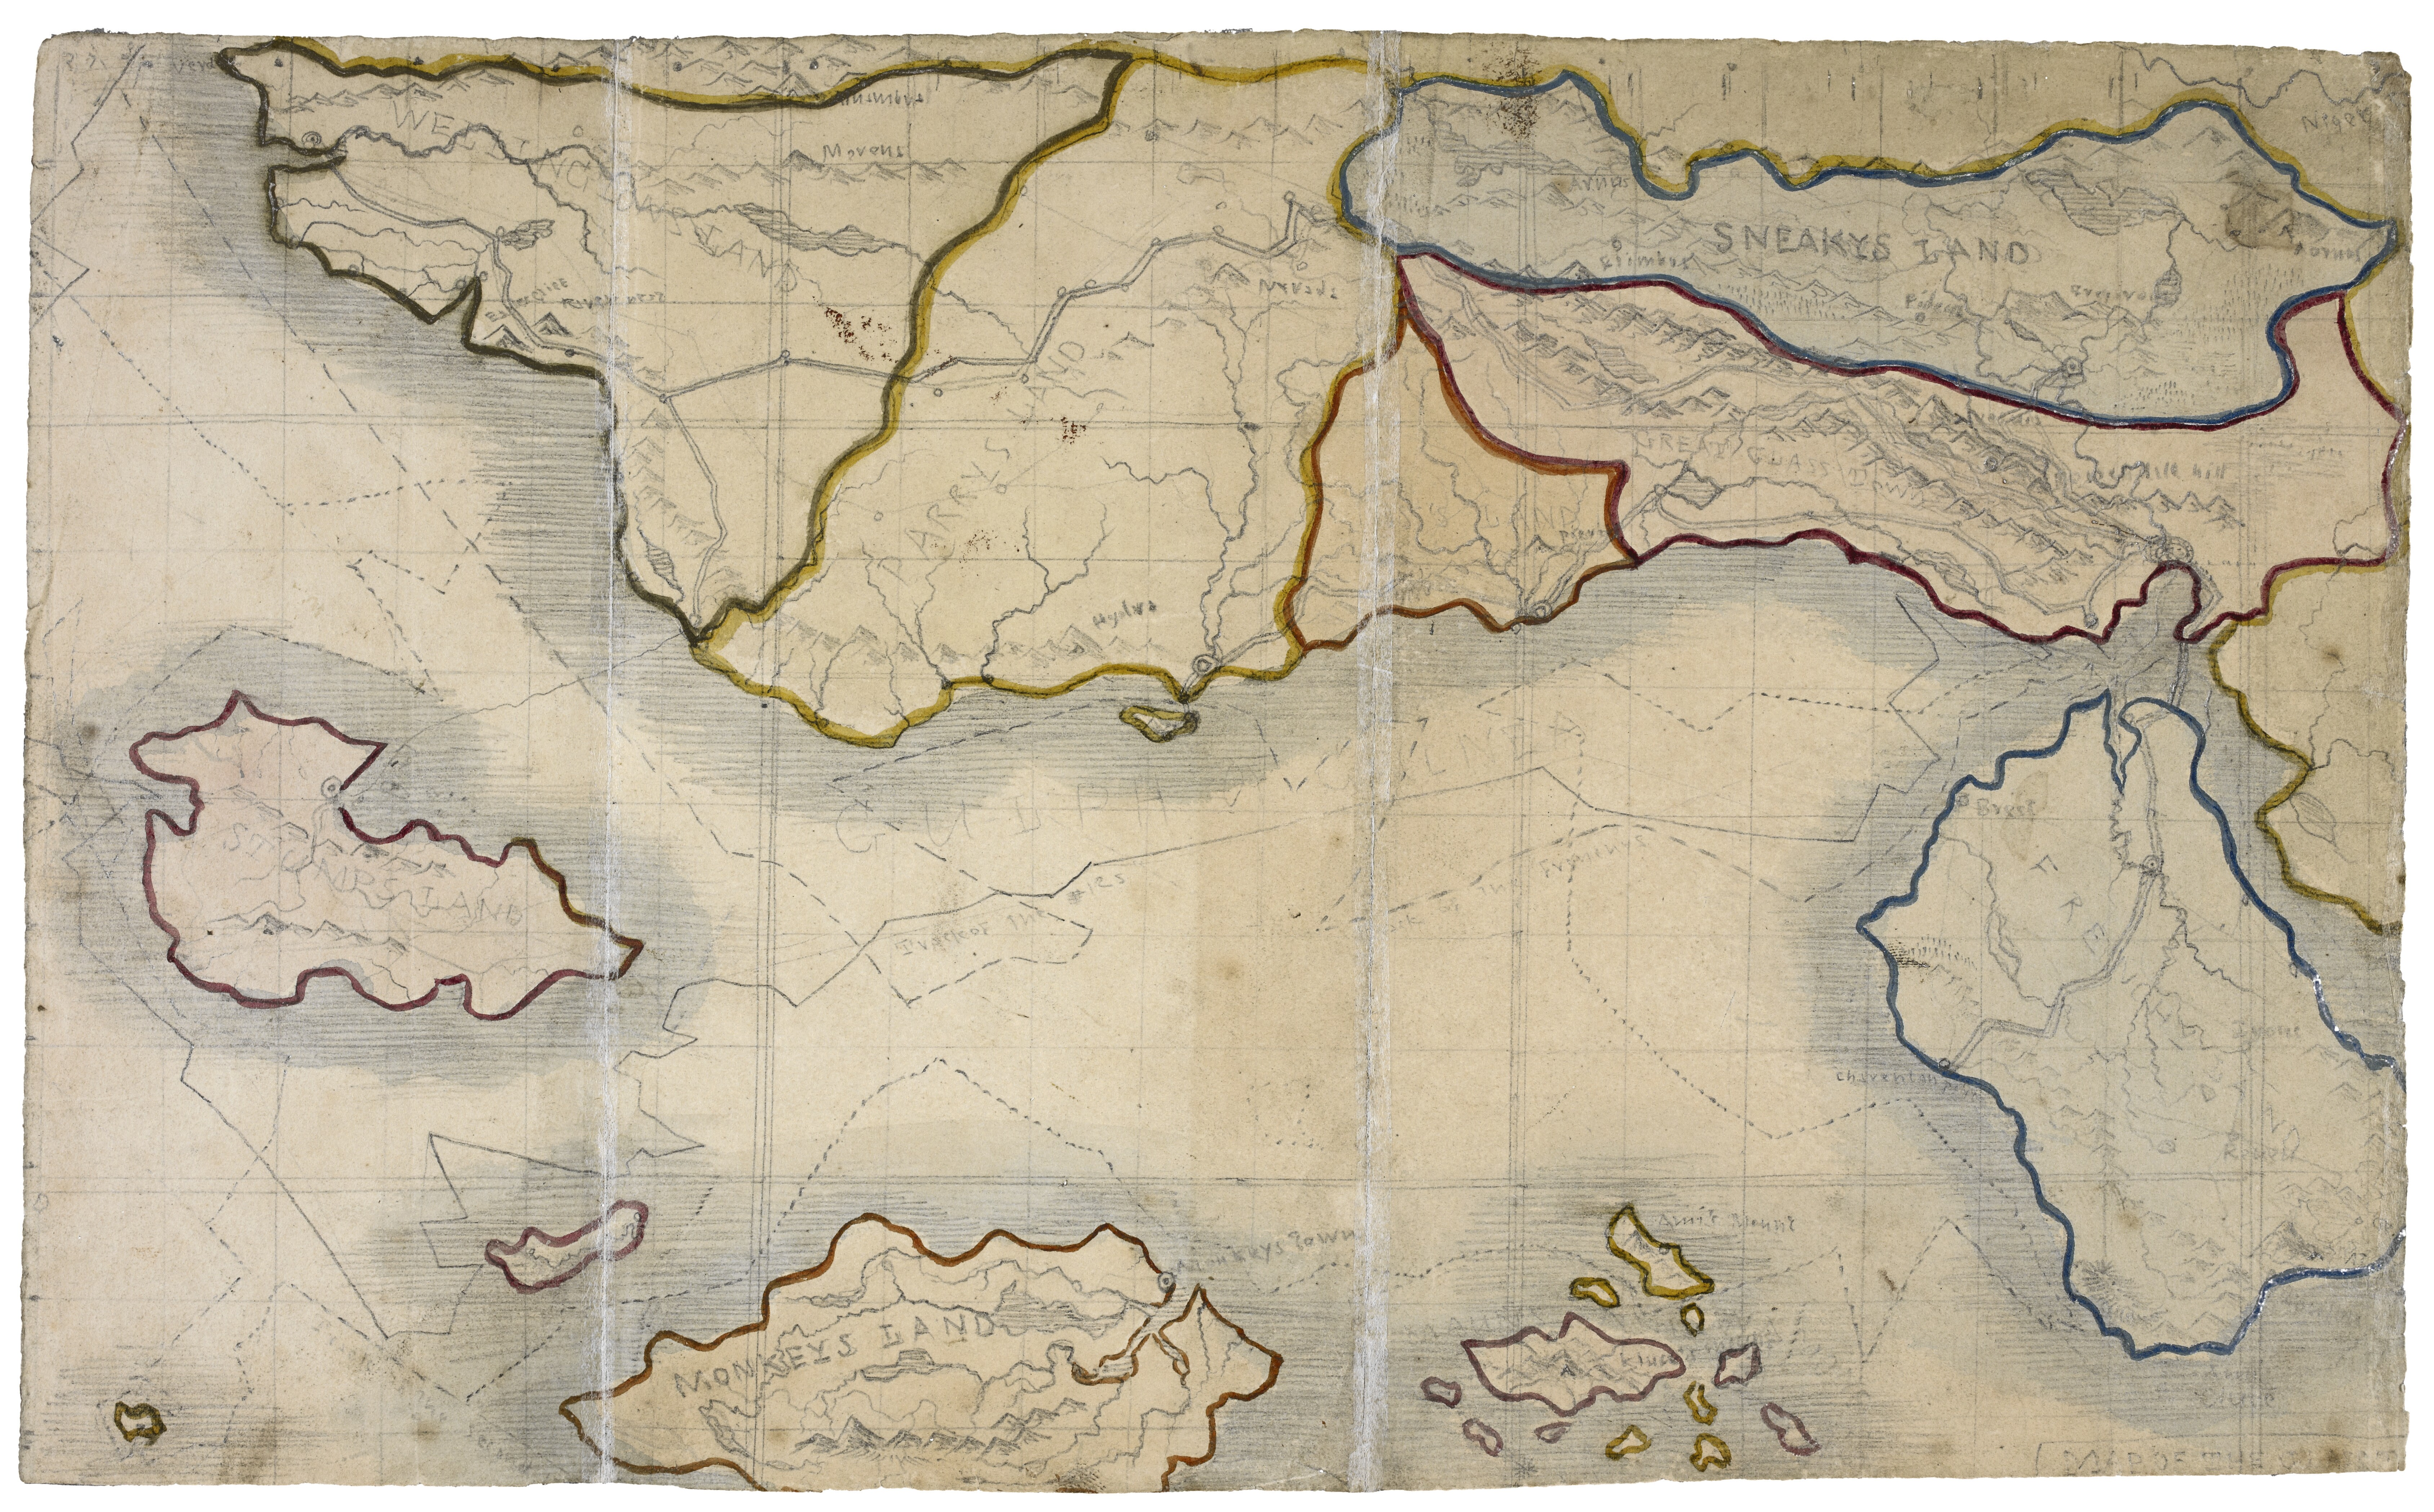 A map of imaginary lands dreamed up by Charlotte Brontë